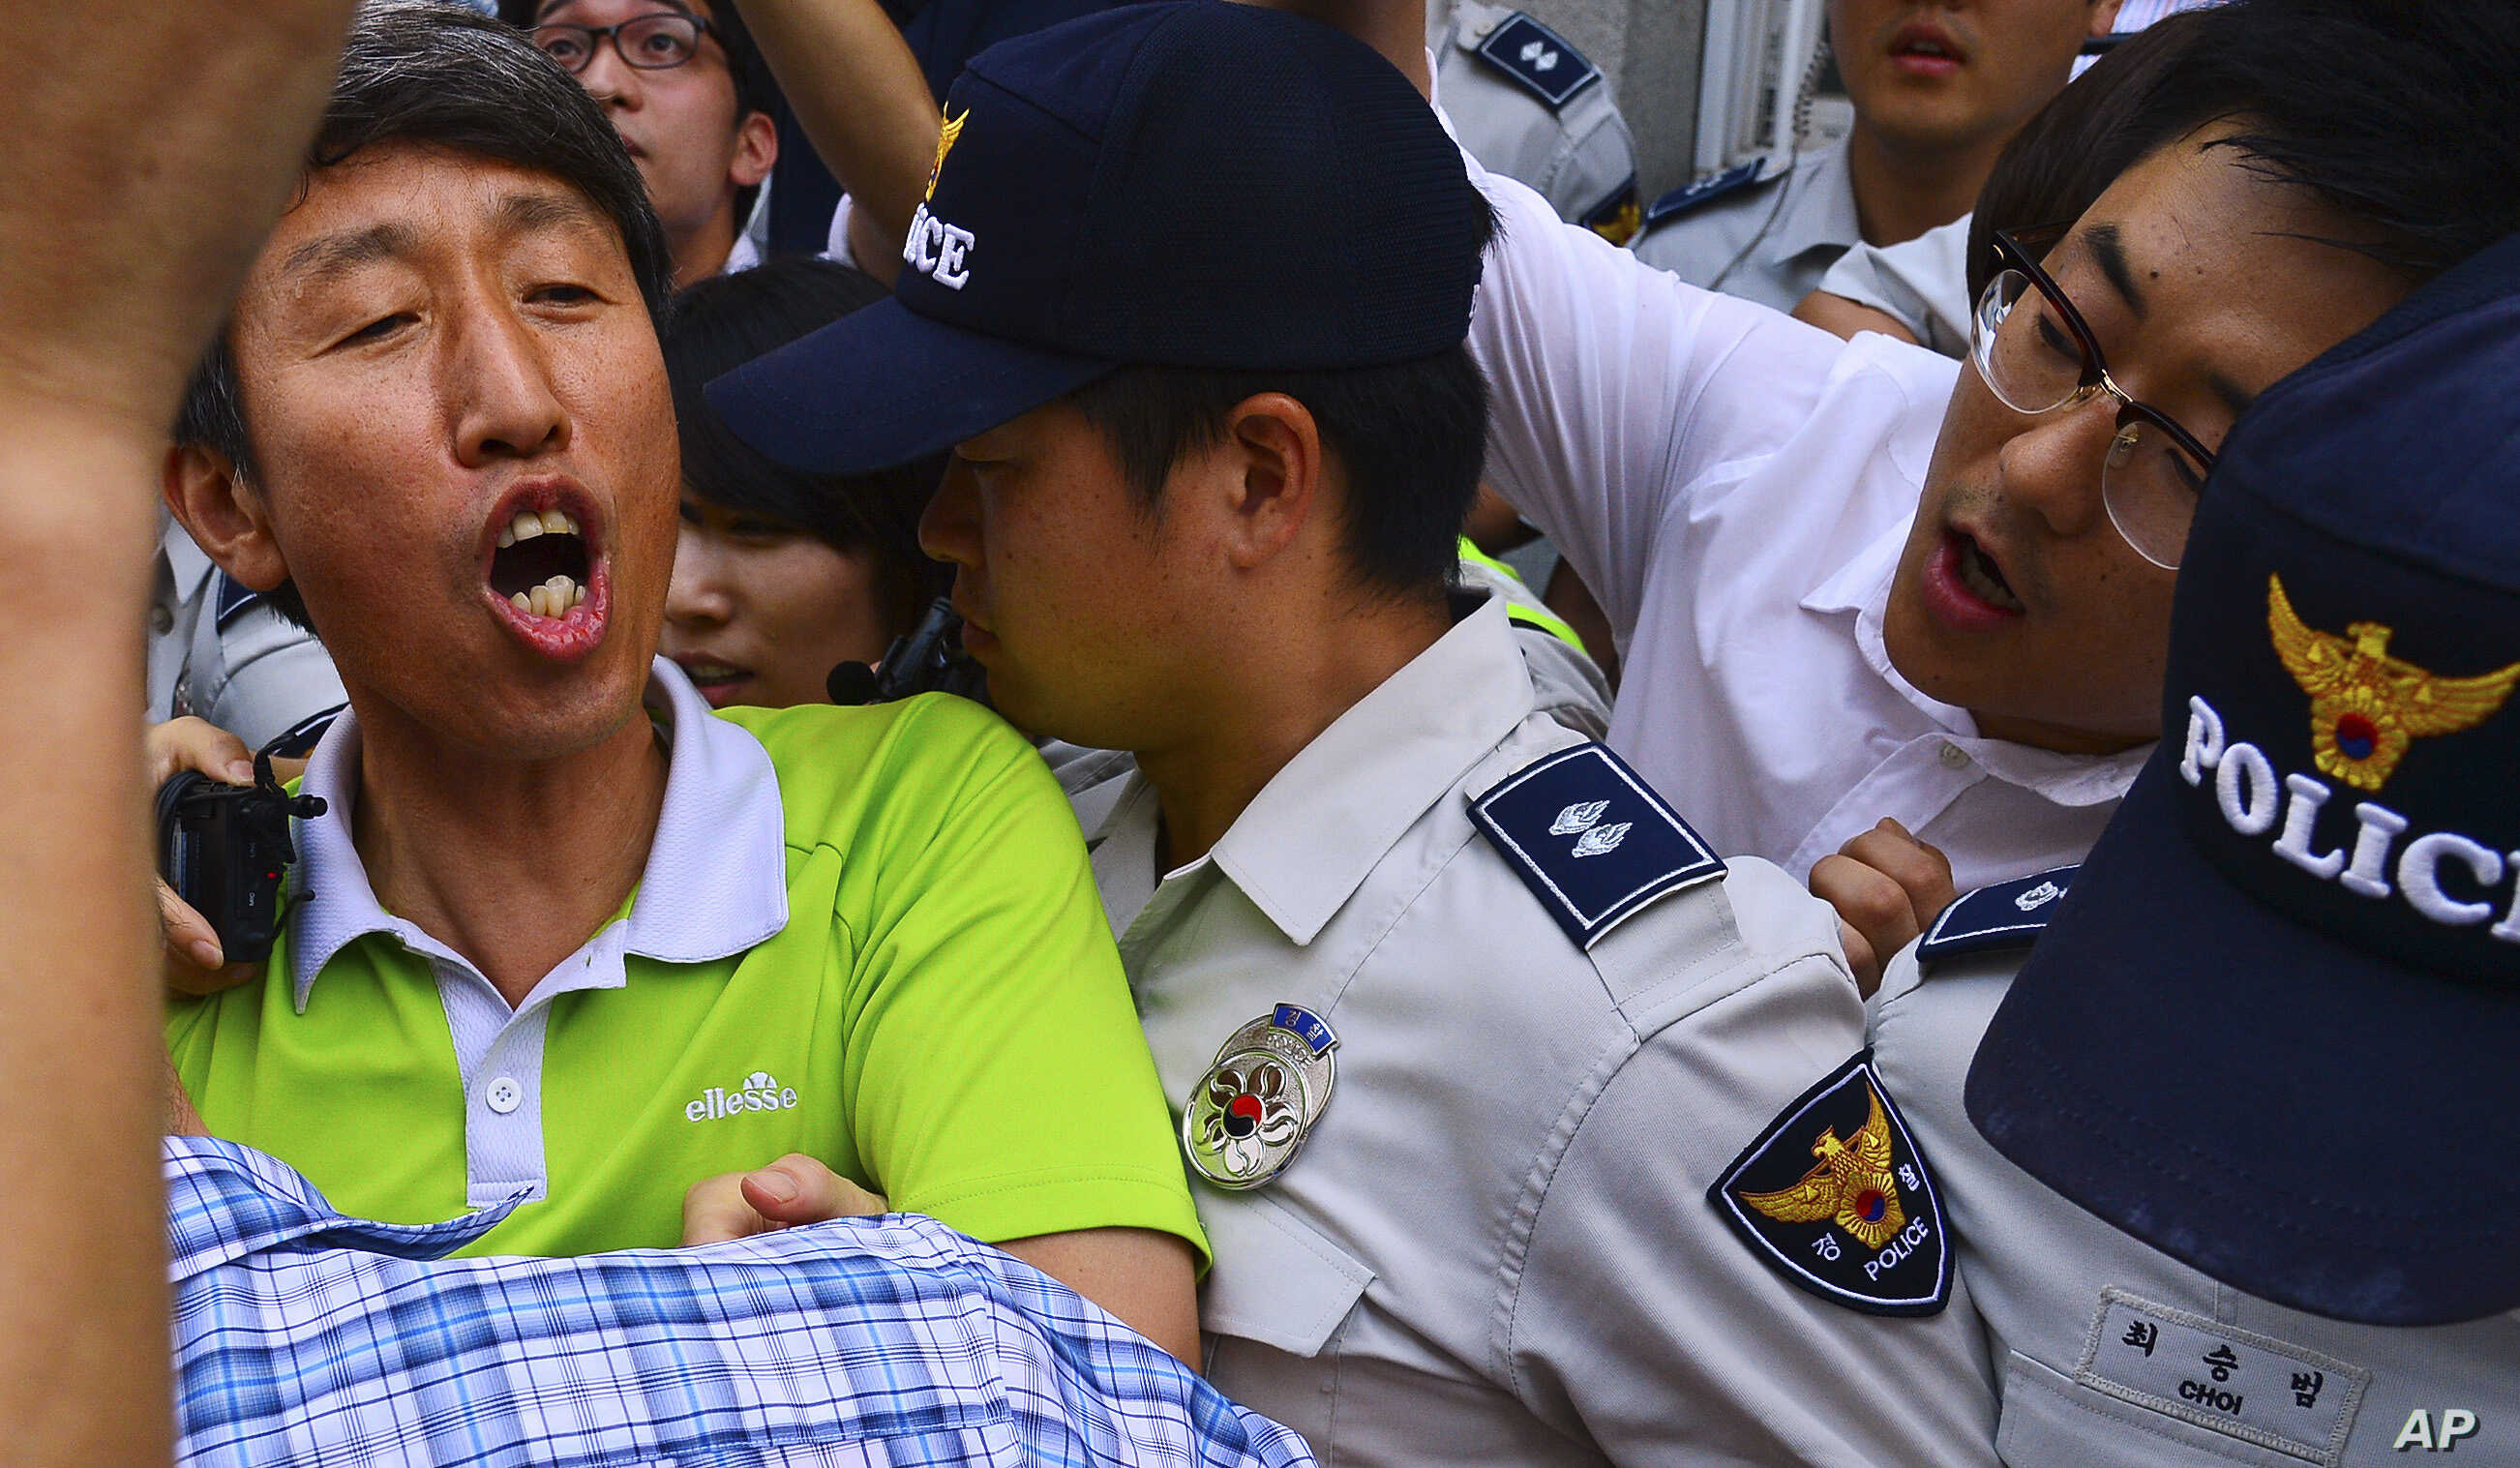 United Progressive Party member Lee Sang-ho, left, is arrested by South Korea's National Intelligence Service at his home in Suwon, south of Seoul, South Korea, Aug. 28, 2013.